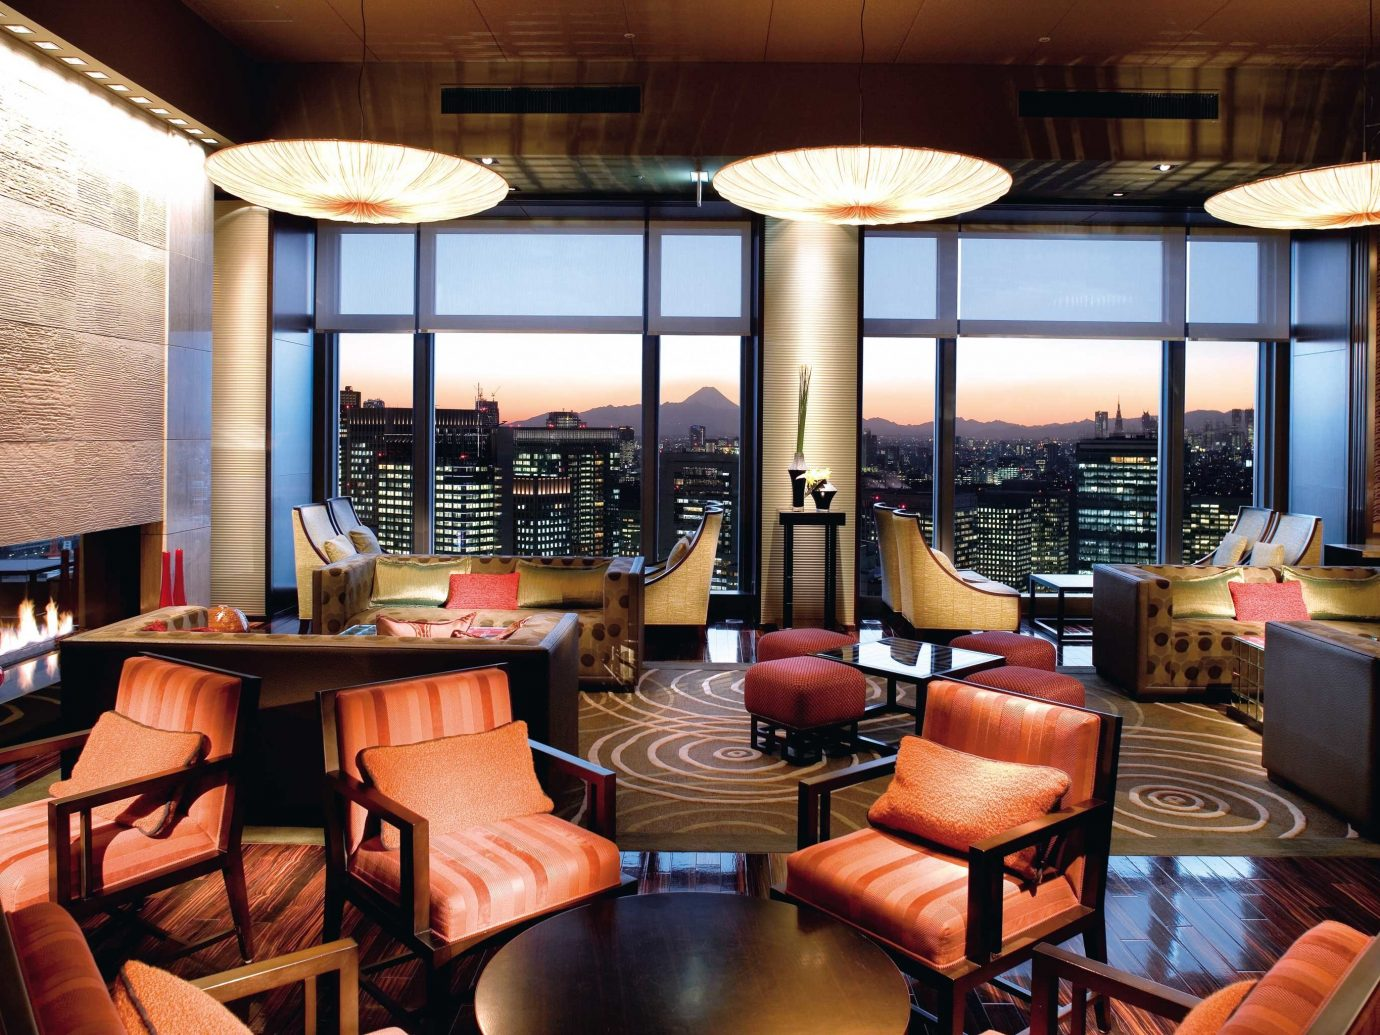 City Elegant Hotels Japan Lobby Lounge Luxury Modern Tokyo table indoor chair Living room window restaurant Resort café interior design Bar estate real estate living room furniture area leather